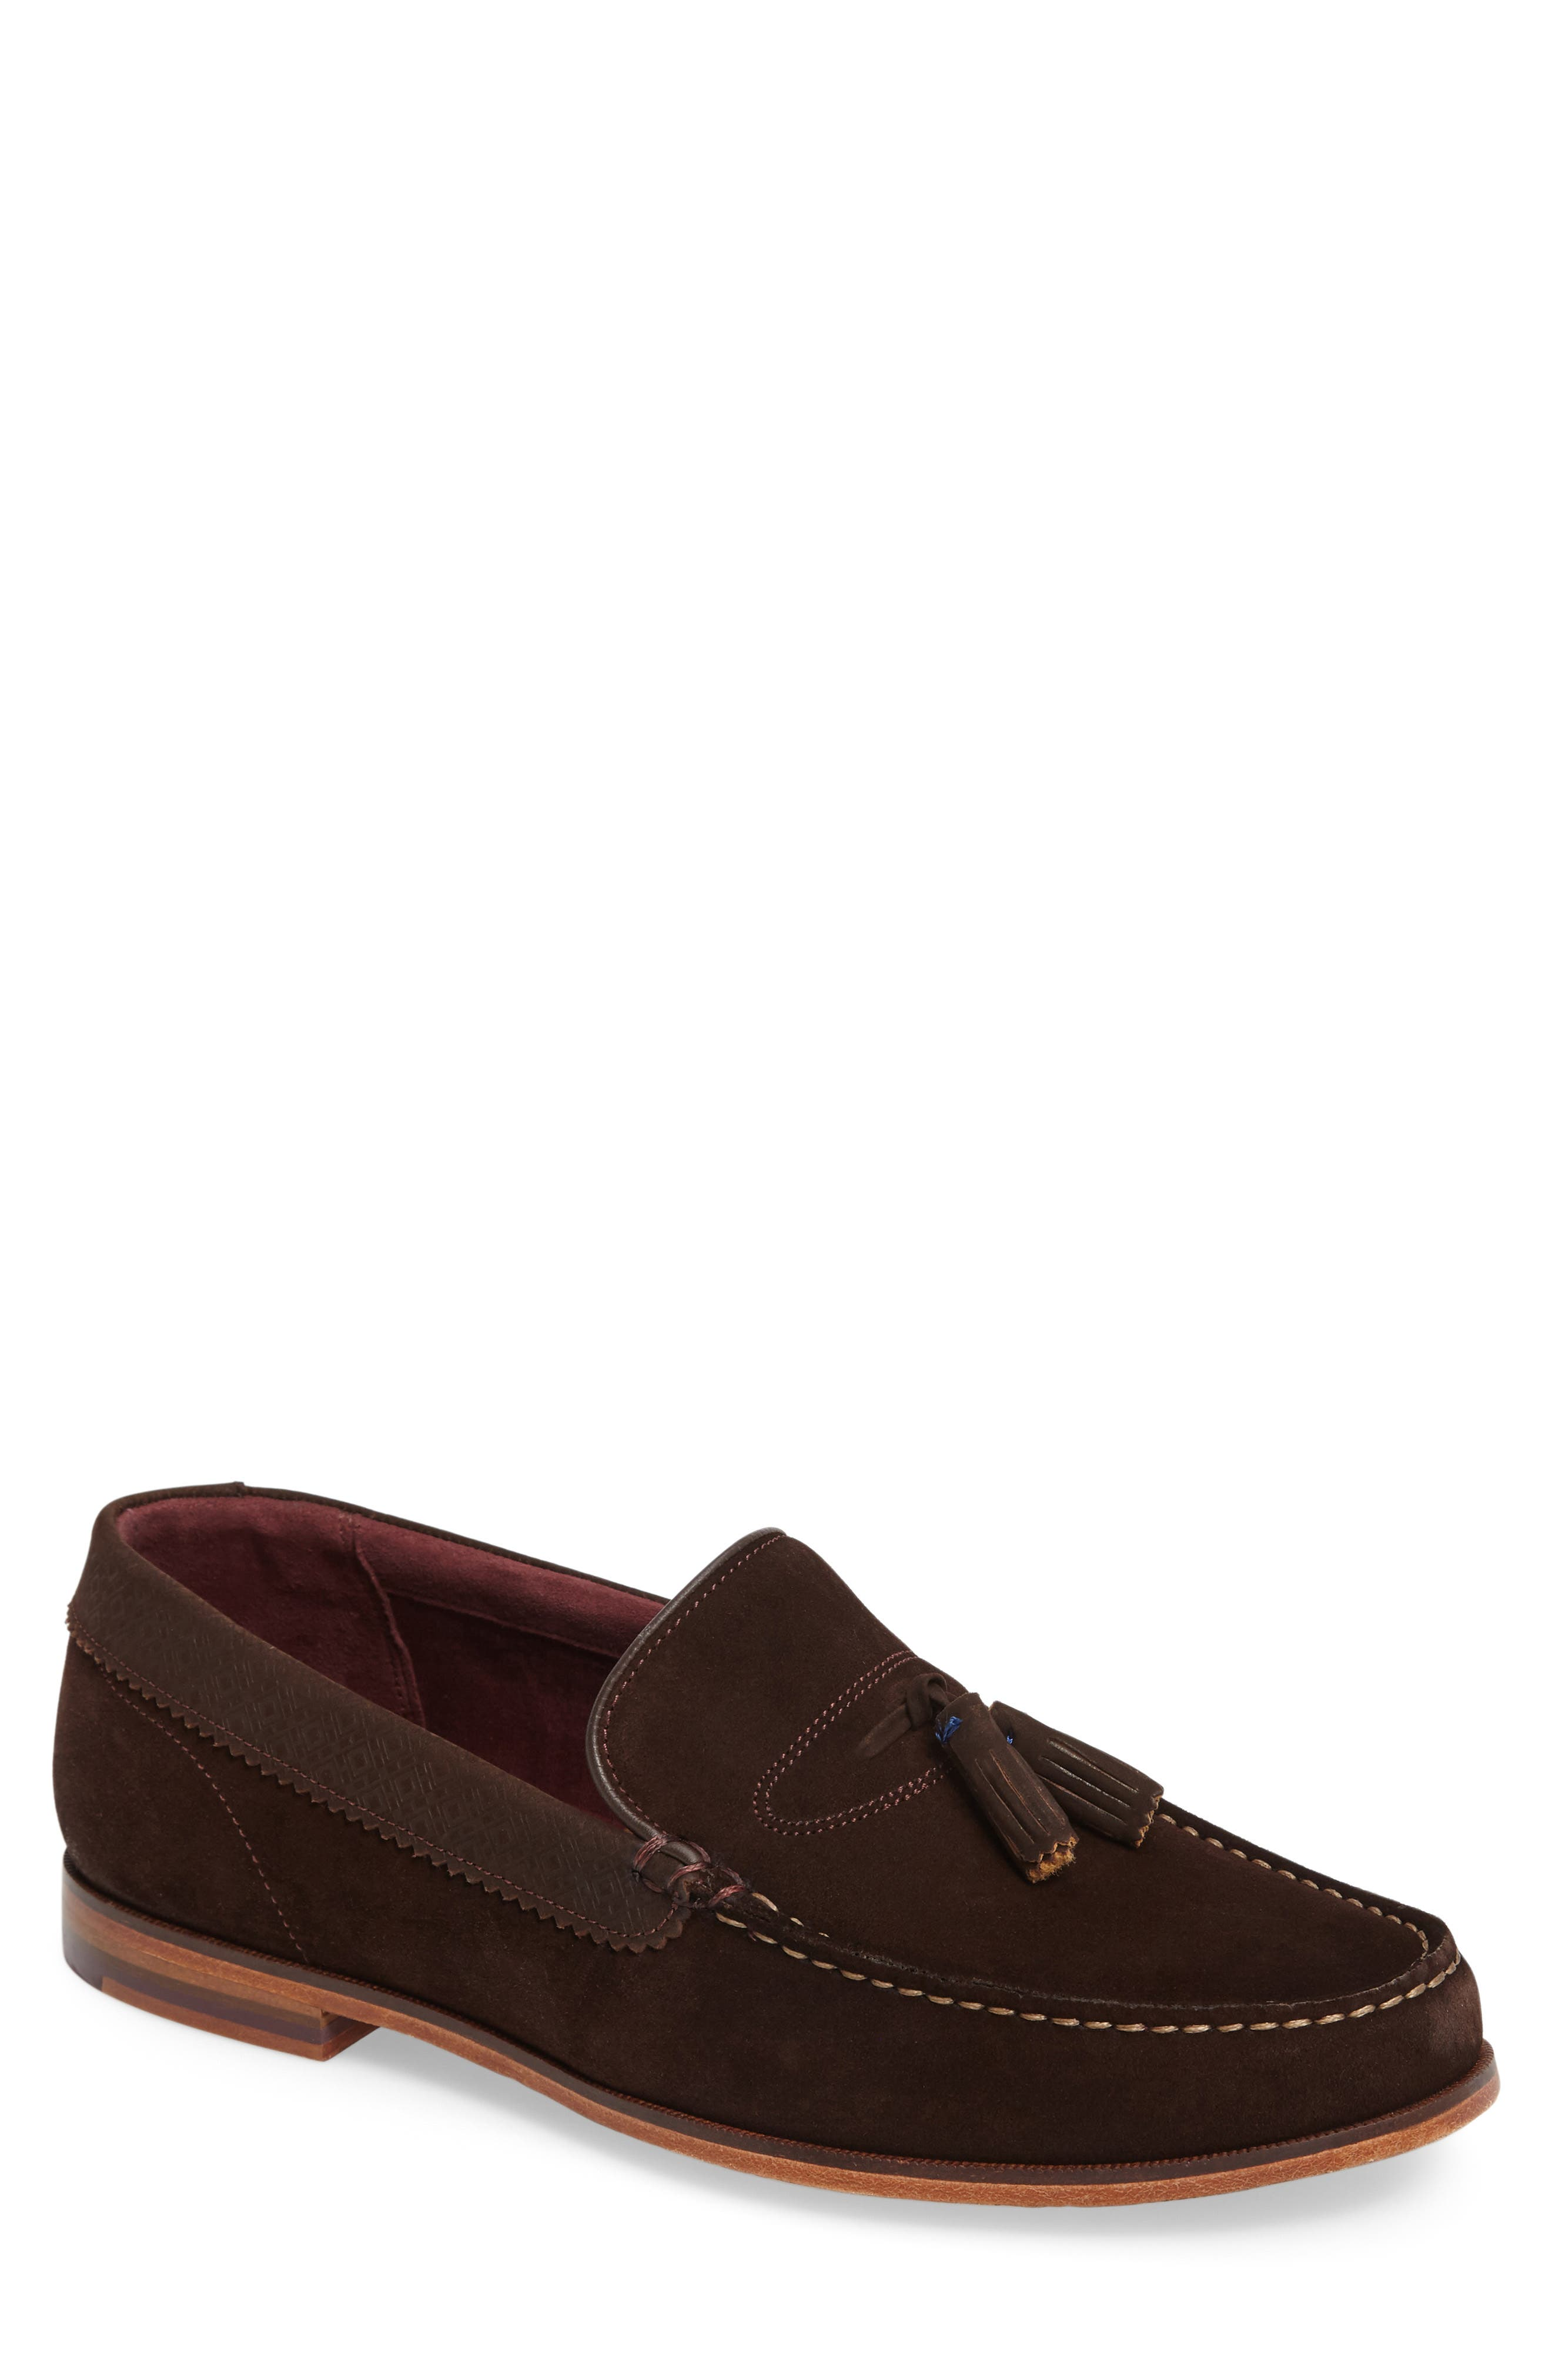 Dougge Tassel Loafer,                             Main thumbnail 3, color,